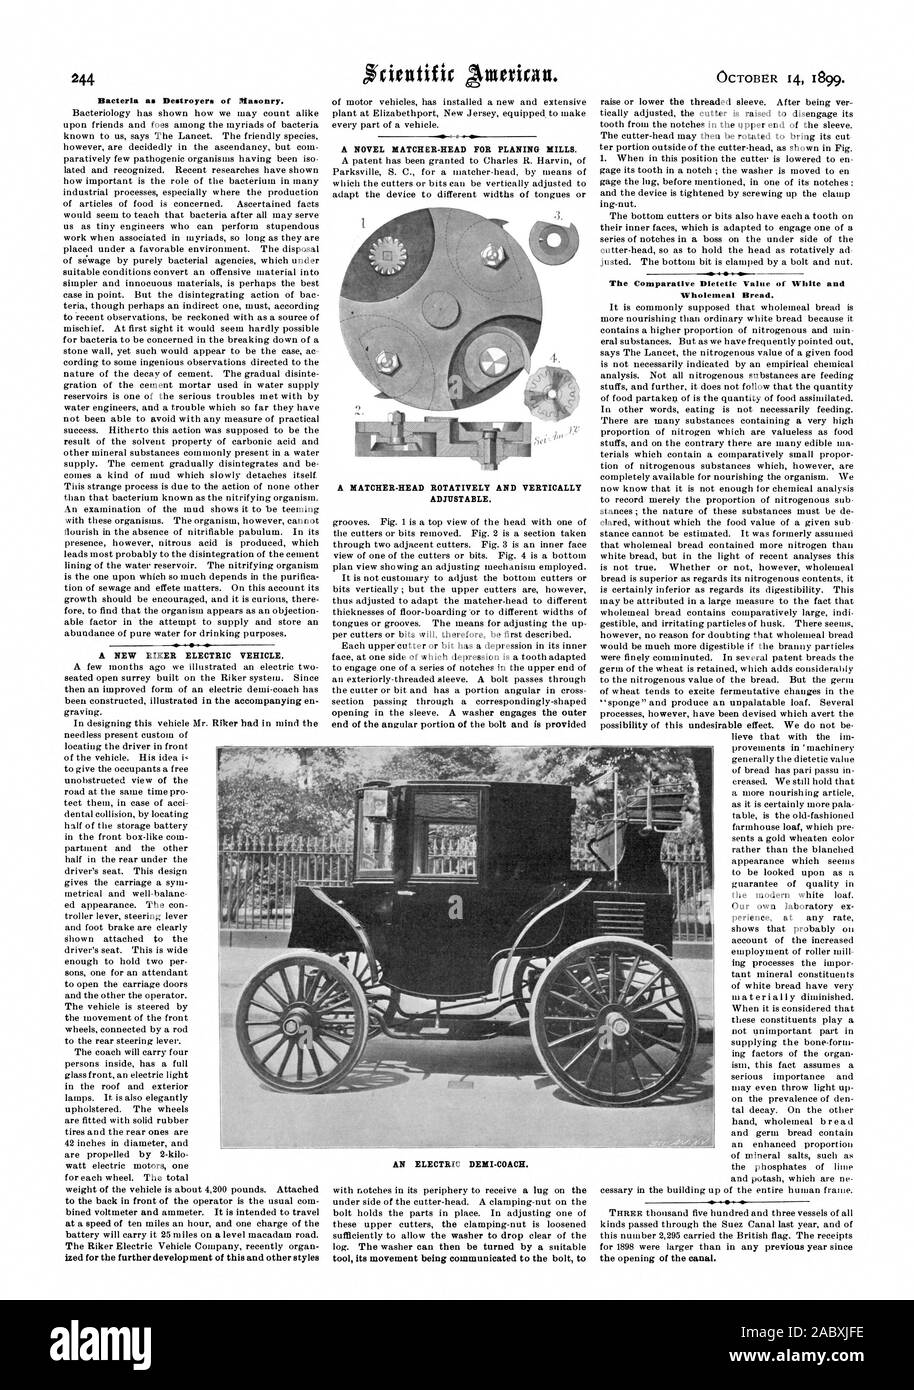 Bacteria as Destroyers of Masonry. A NEW BIKER ELECTRIC VEHICLE. A HATCHER-HEAD ROTATIVELY AND VERTICALLY ADJUSTABLE. tool its movement being communicated to the bolt t Wholemeal Bread., scientific american, 1899-10-14 Stock Photo